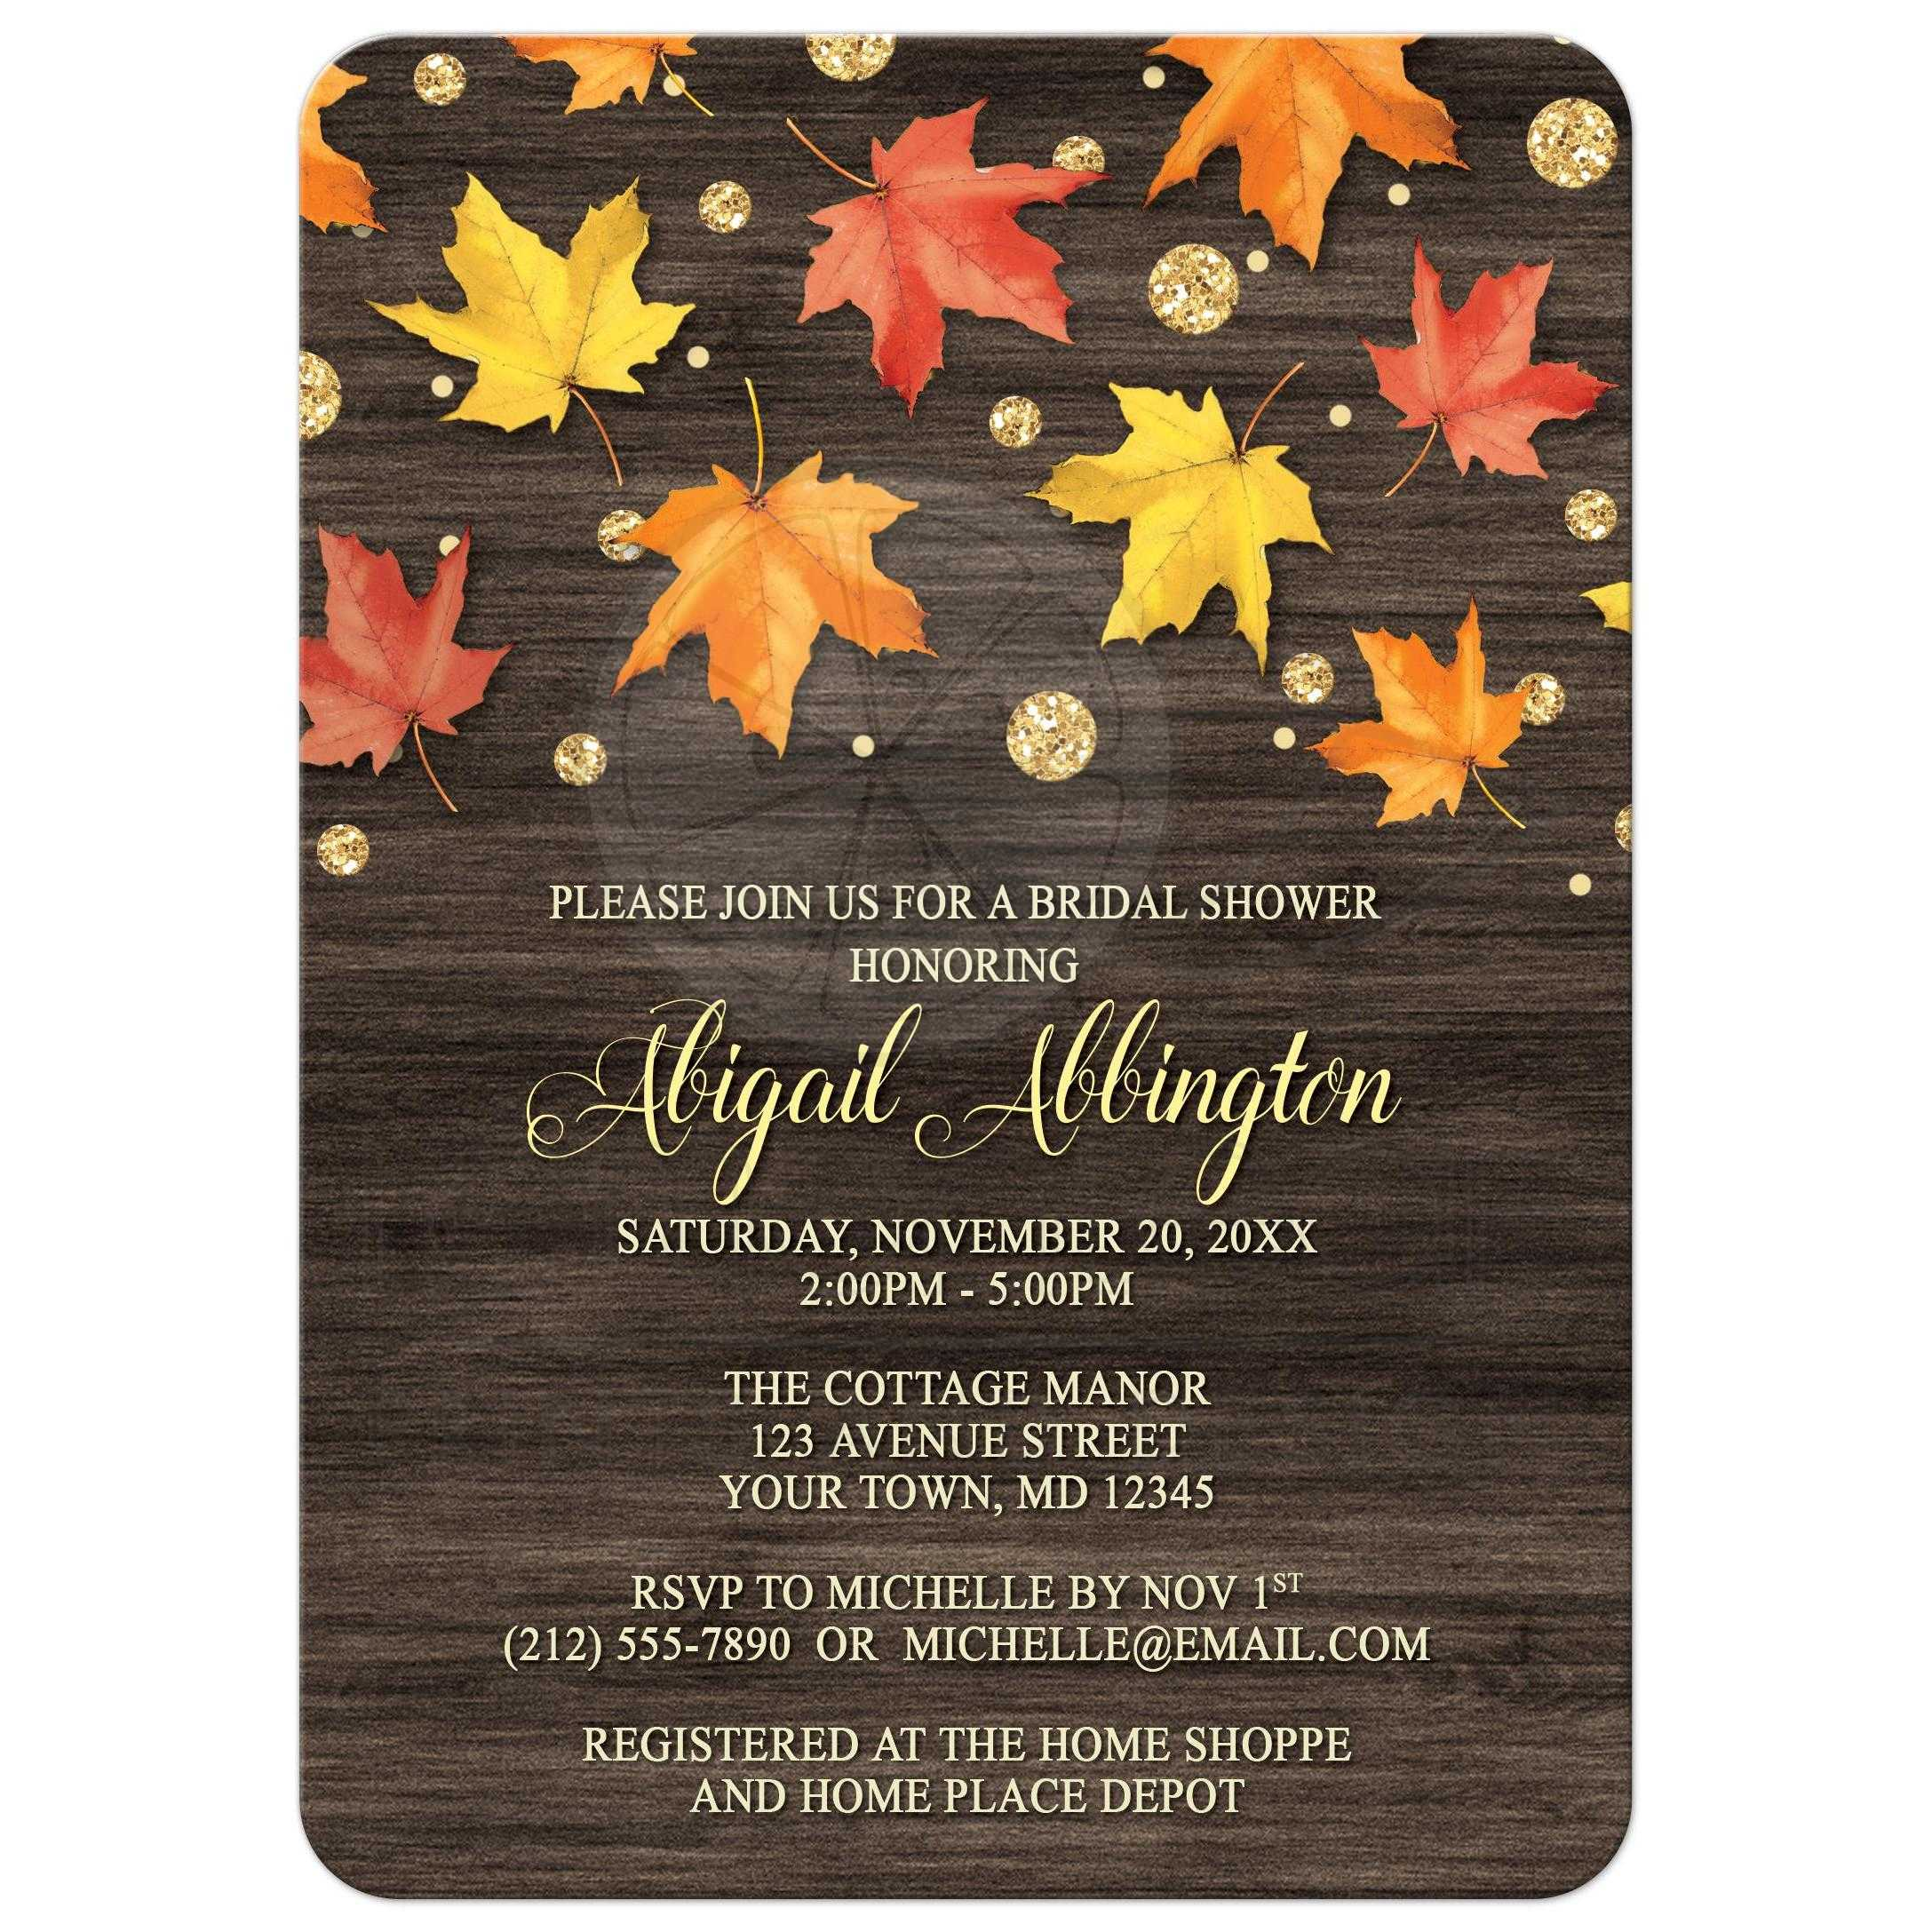 Shower Invitations - Falling Leaves with Gold Autumn